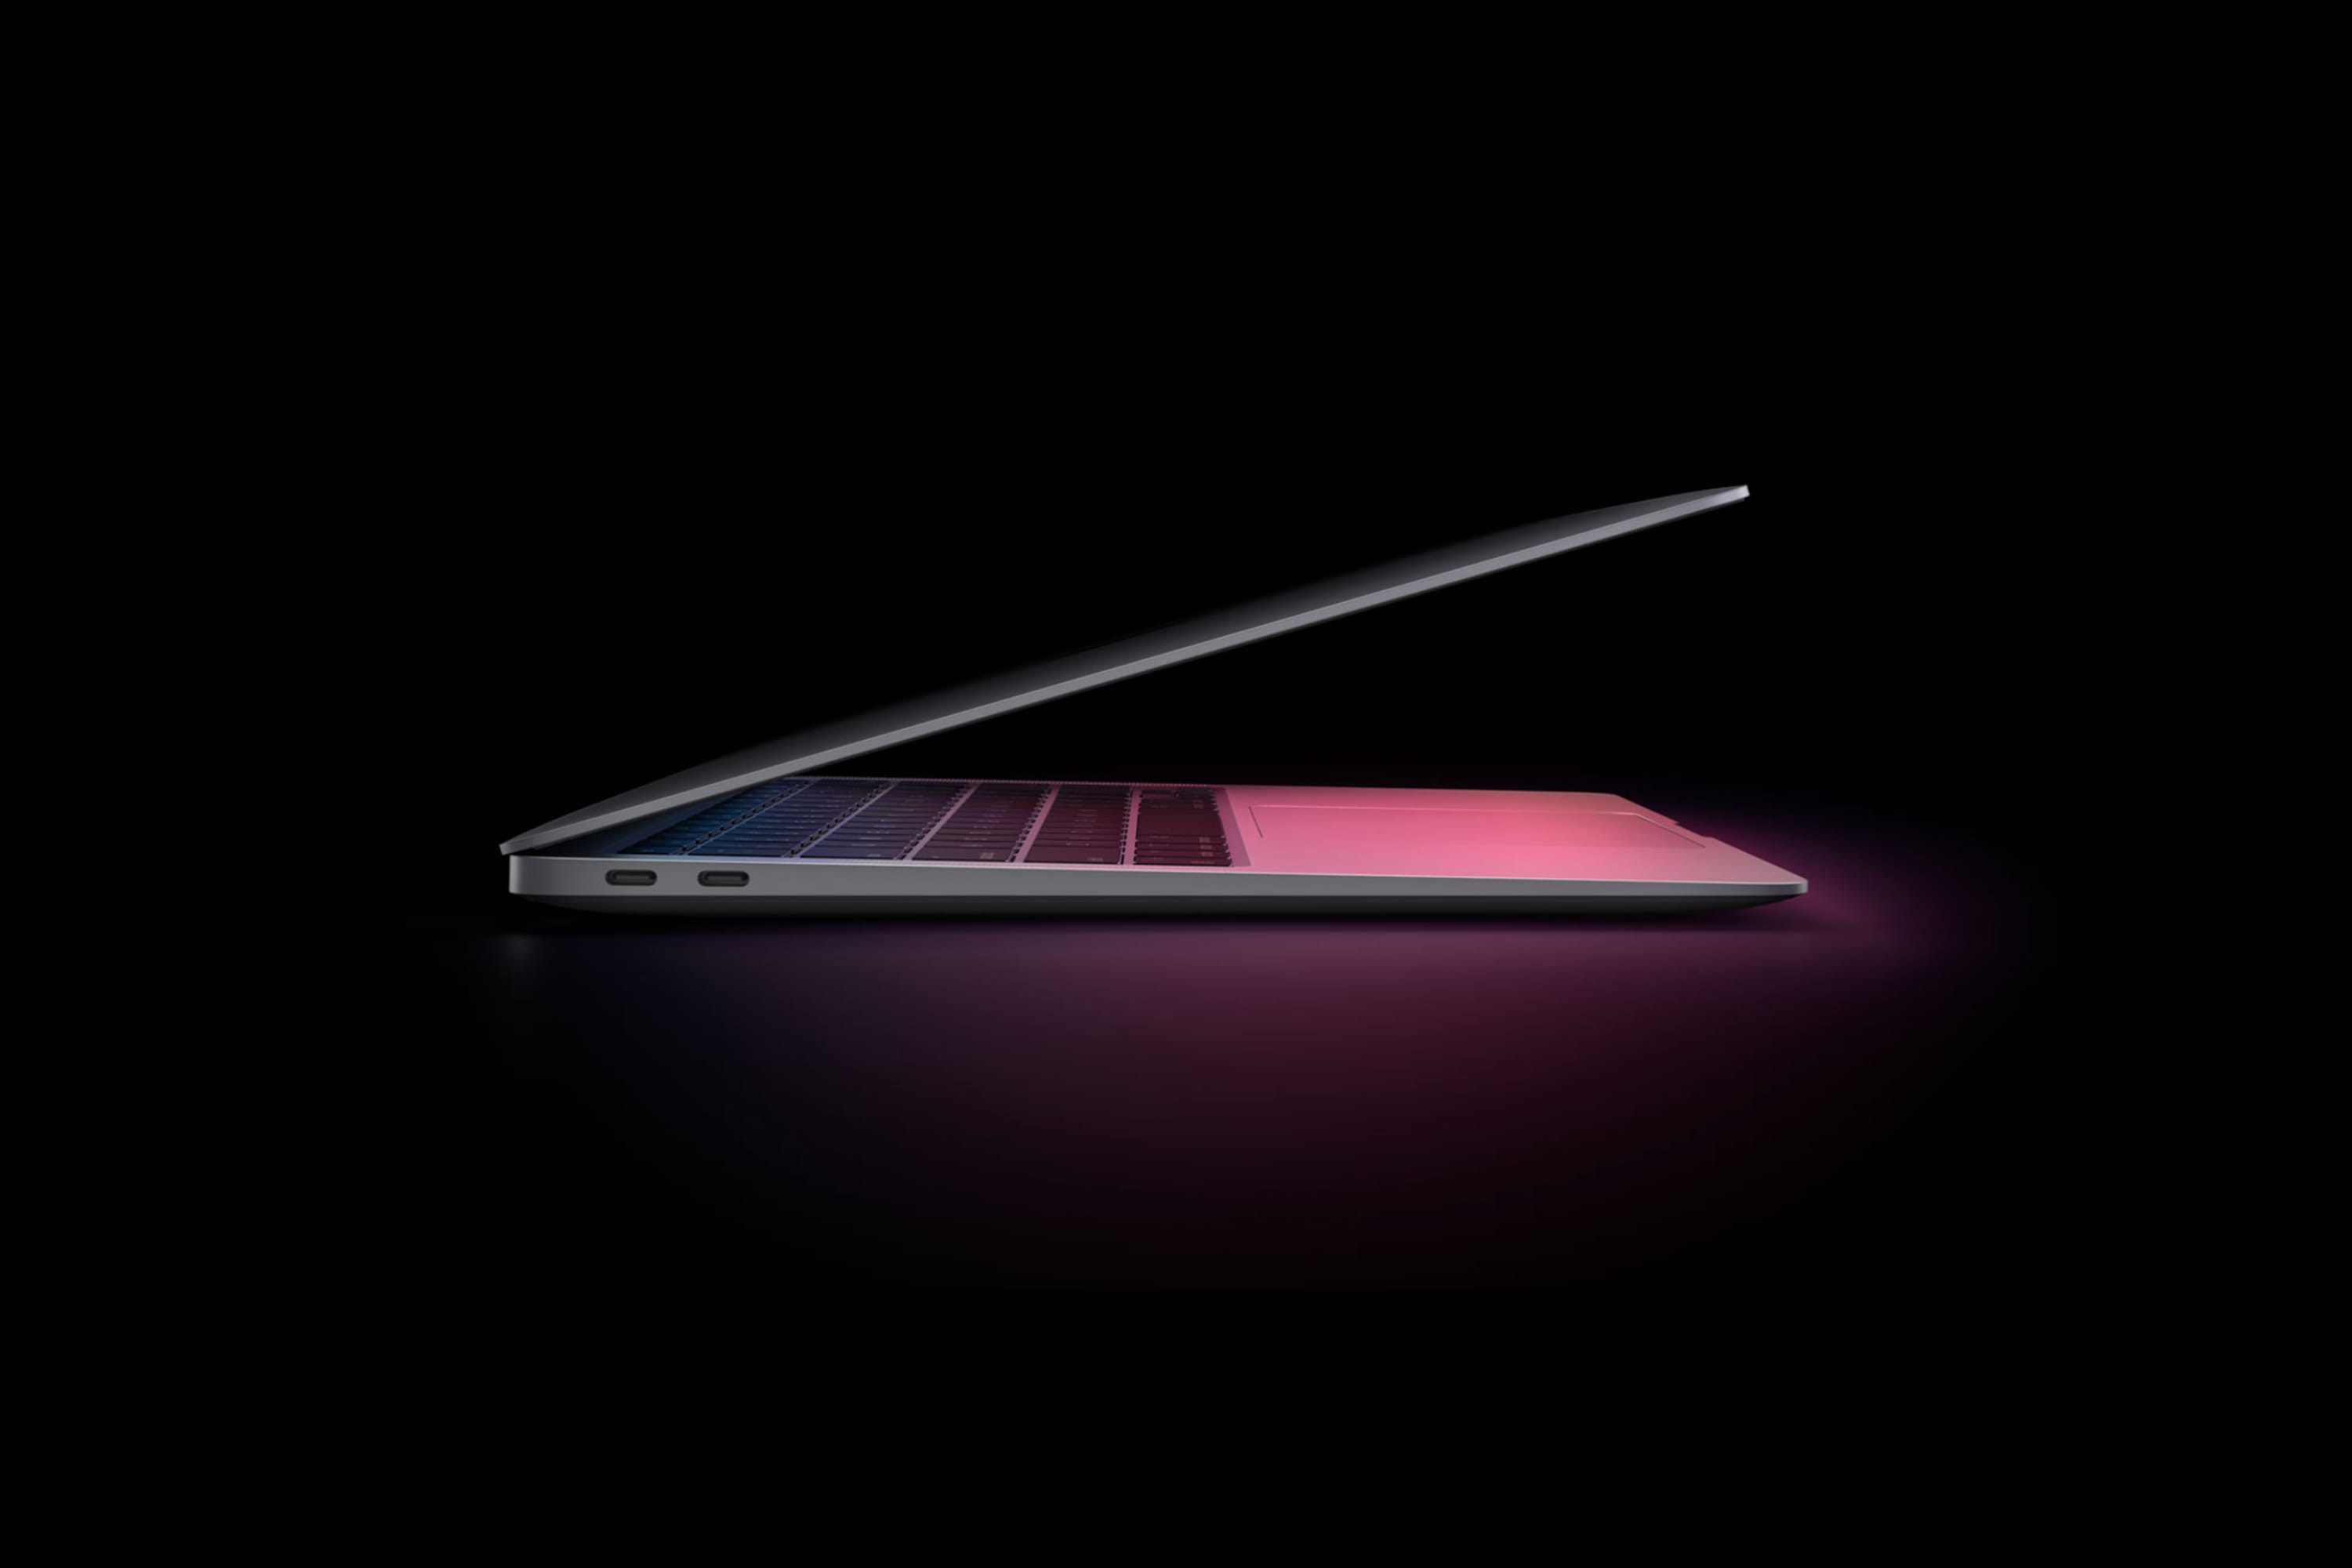 apple-releases-new-macbook-air-macbook-pro-and-mac-mini-during-november-event-20201110-2